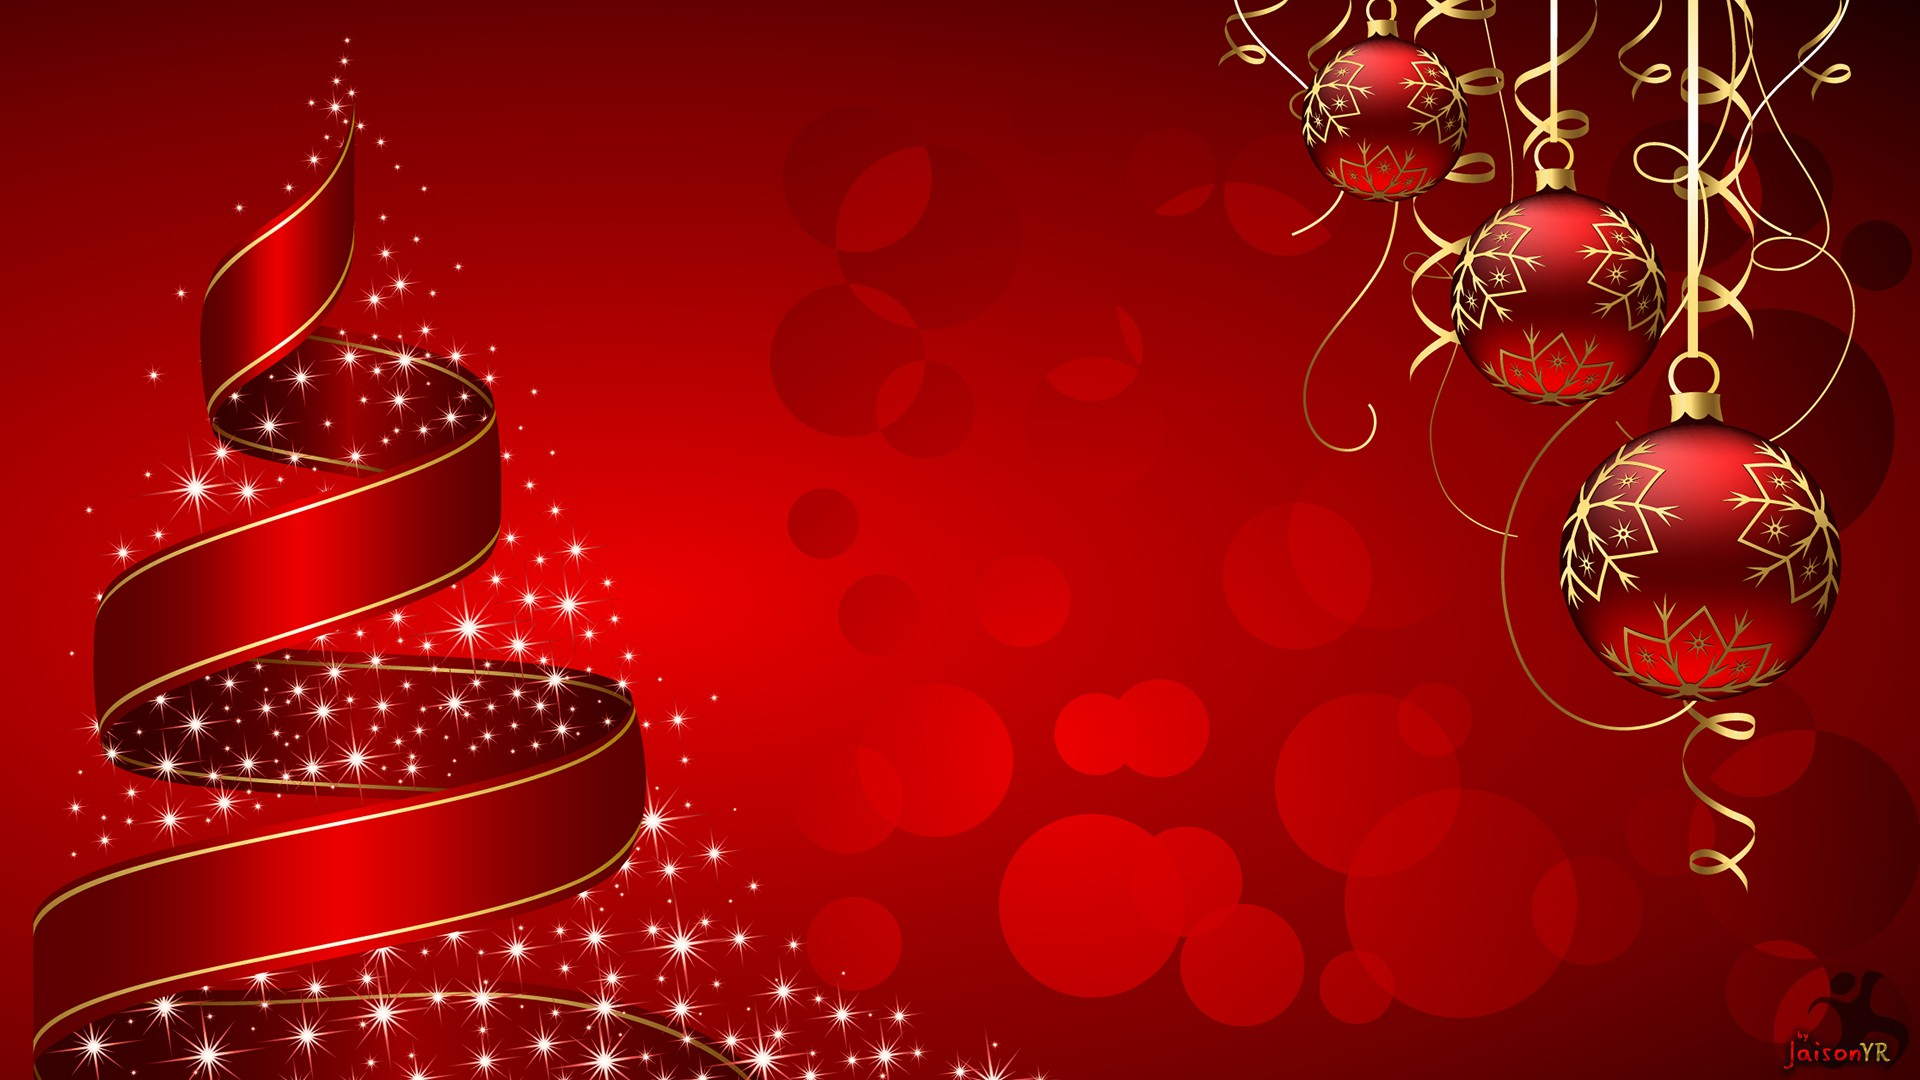 1920x1080 Red Christmas Background Download Free Hd Wallpapers For